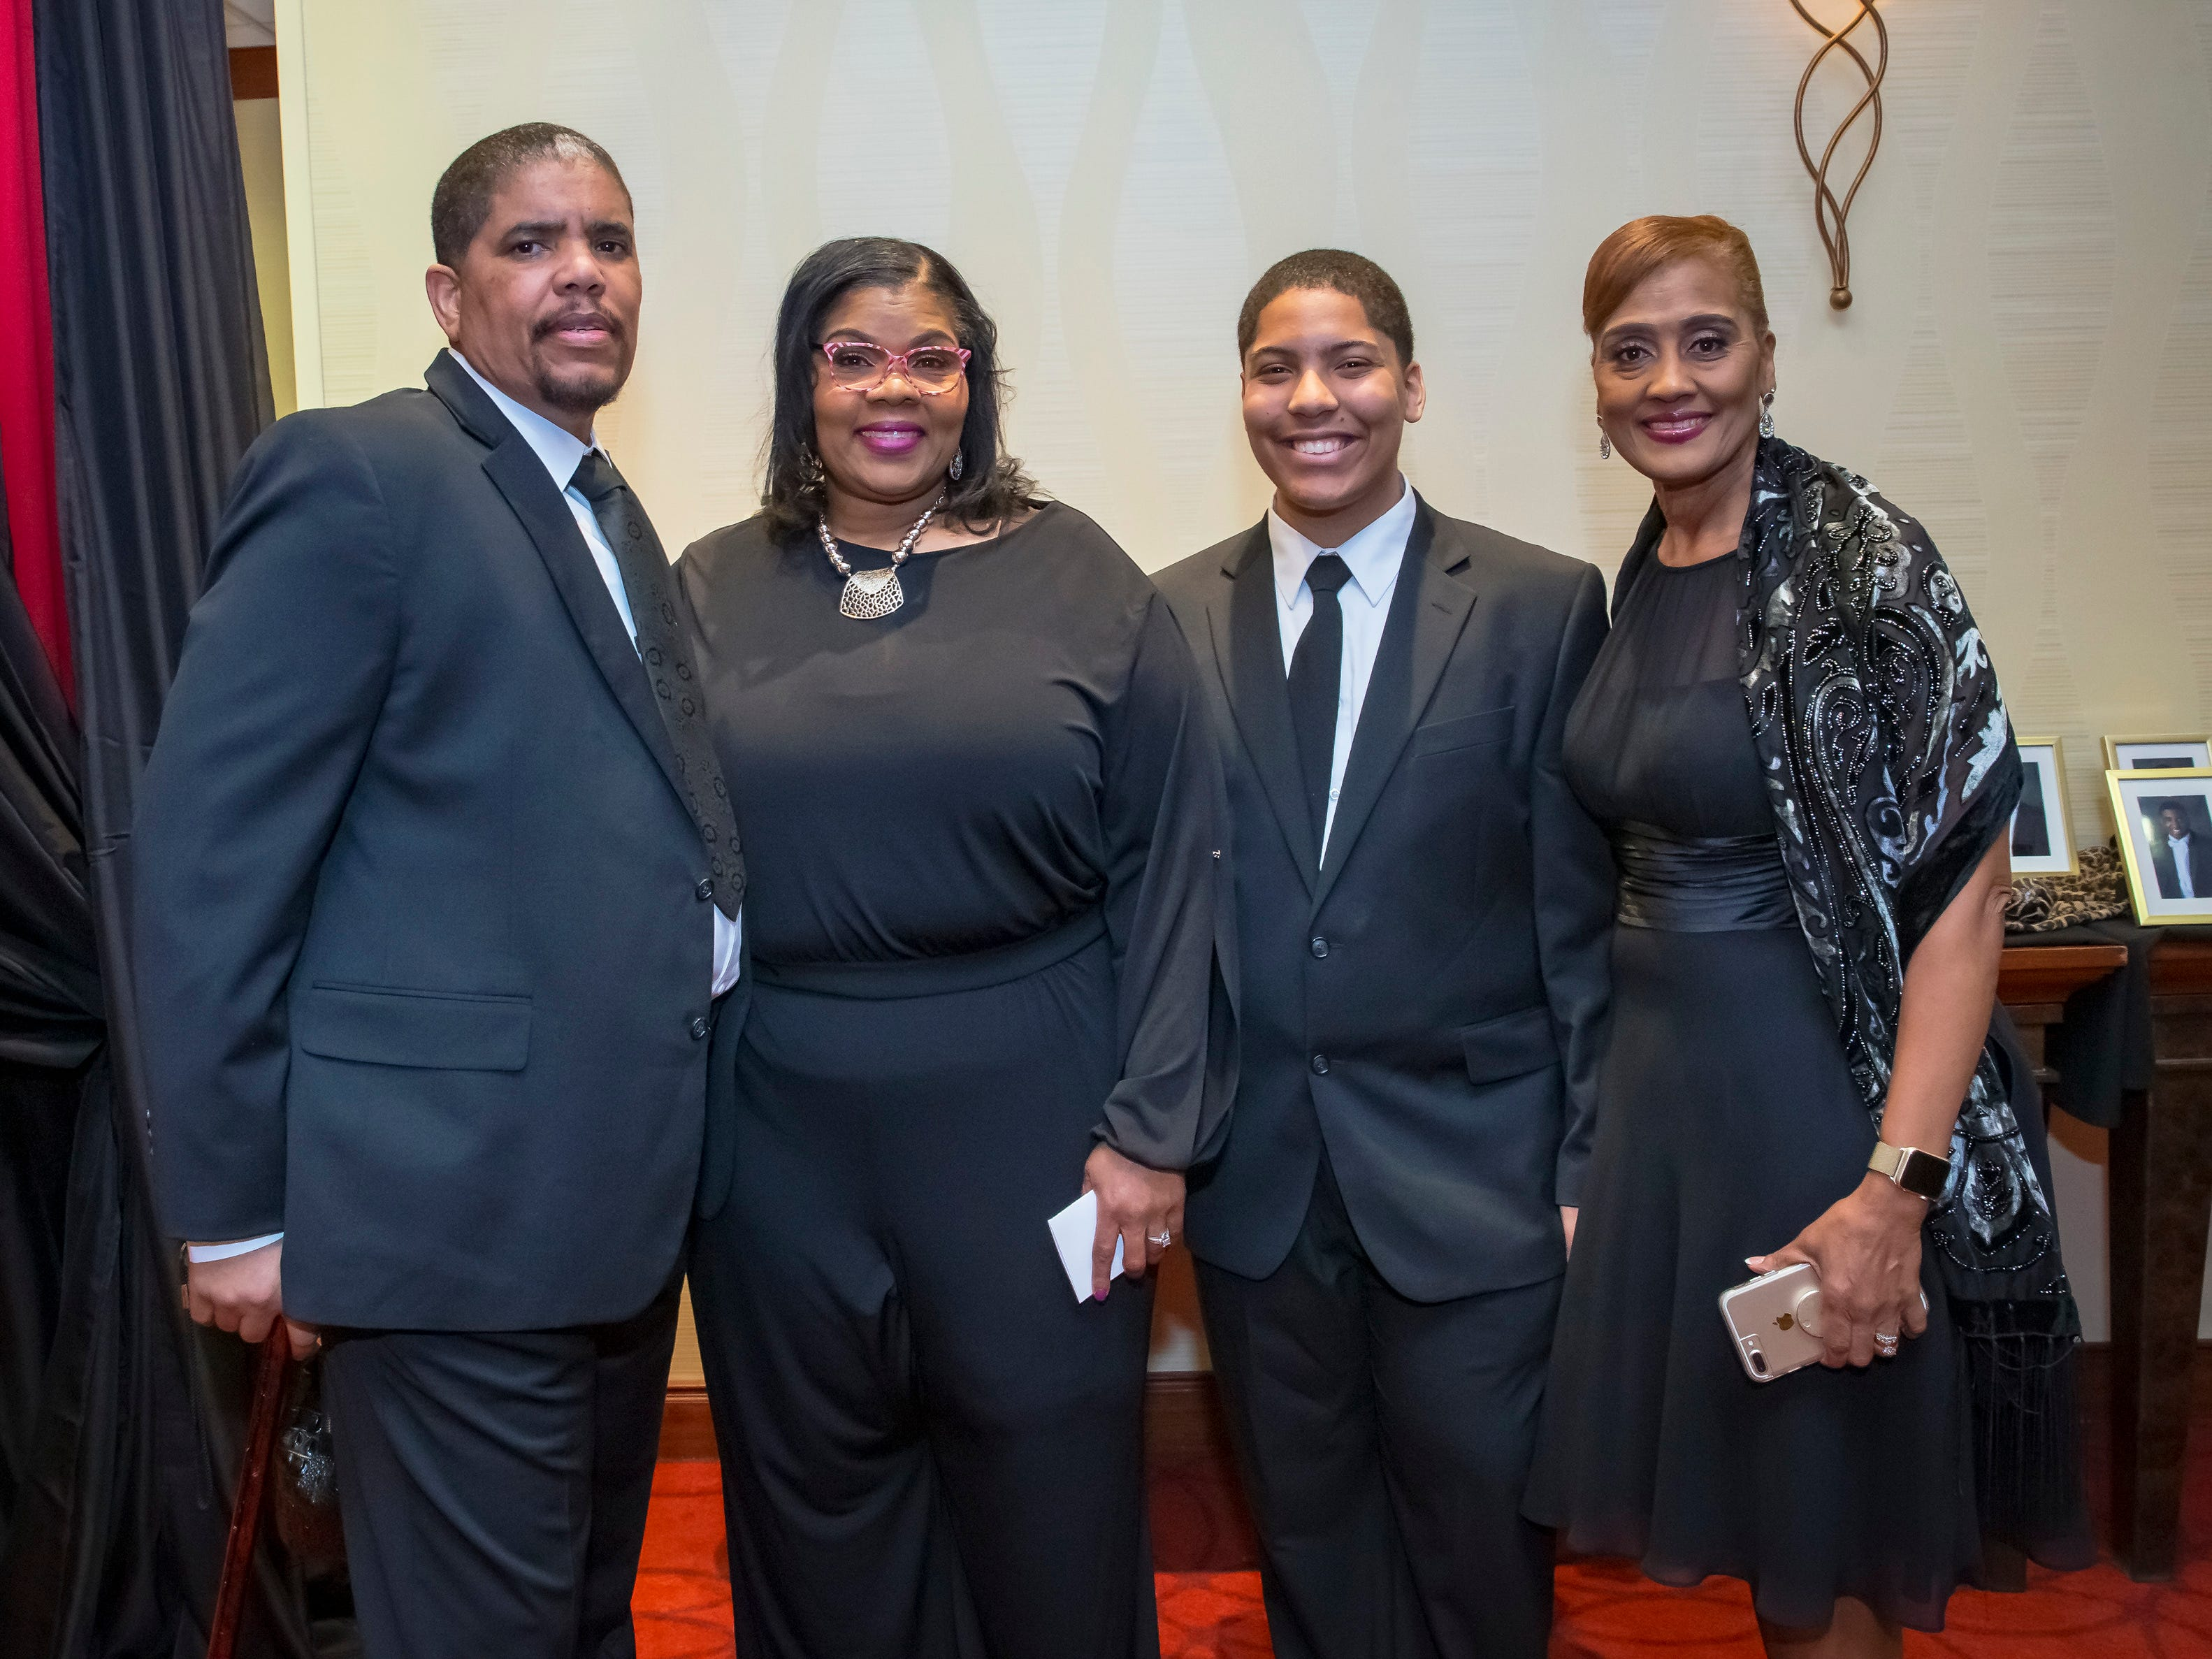 Dwayne Smith, Valarie Smith, Sheldon Smith and Wendy Thomas at the Murfreesboro Alumni Chapter of Kappa Alpha Psi Fraternity Beautillion held at Embassy Suites.